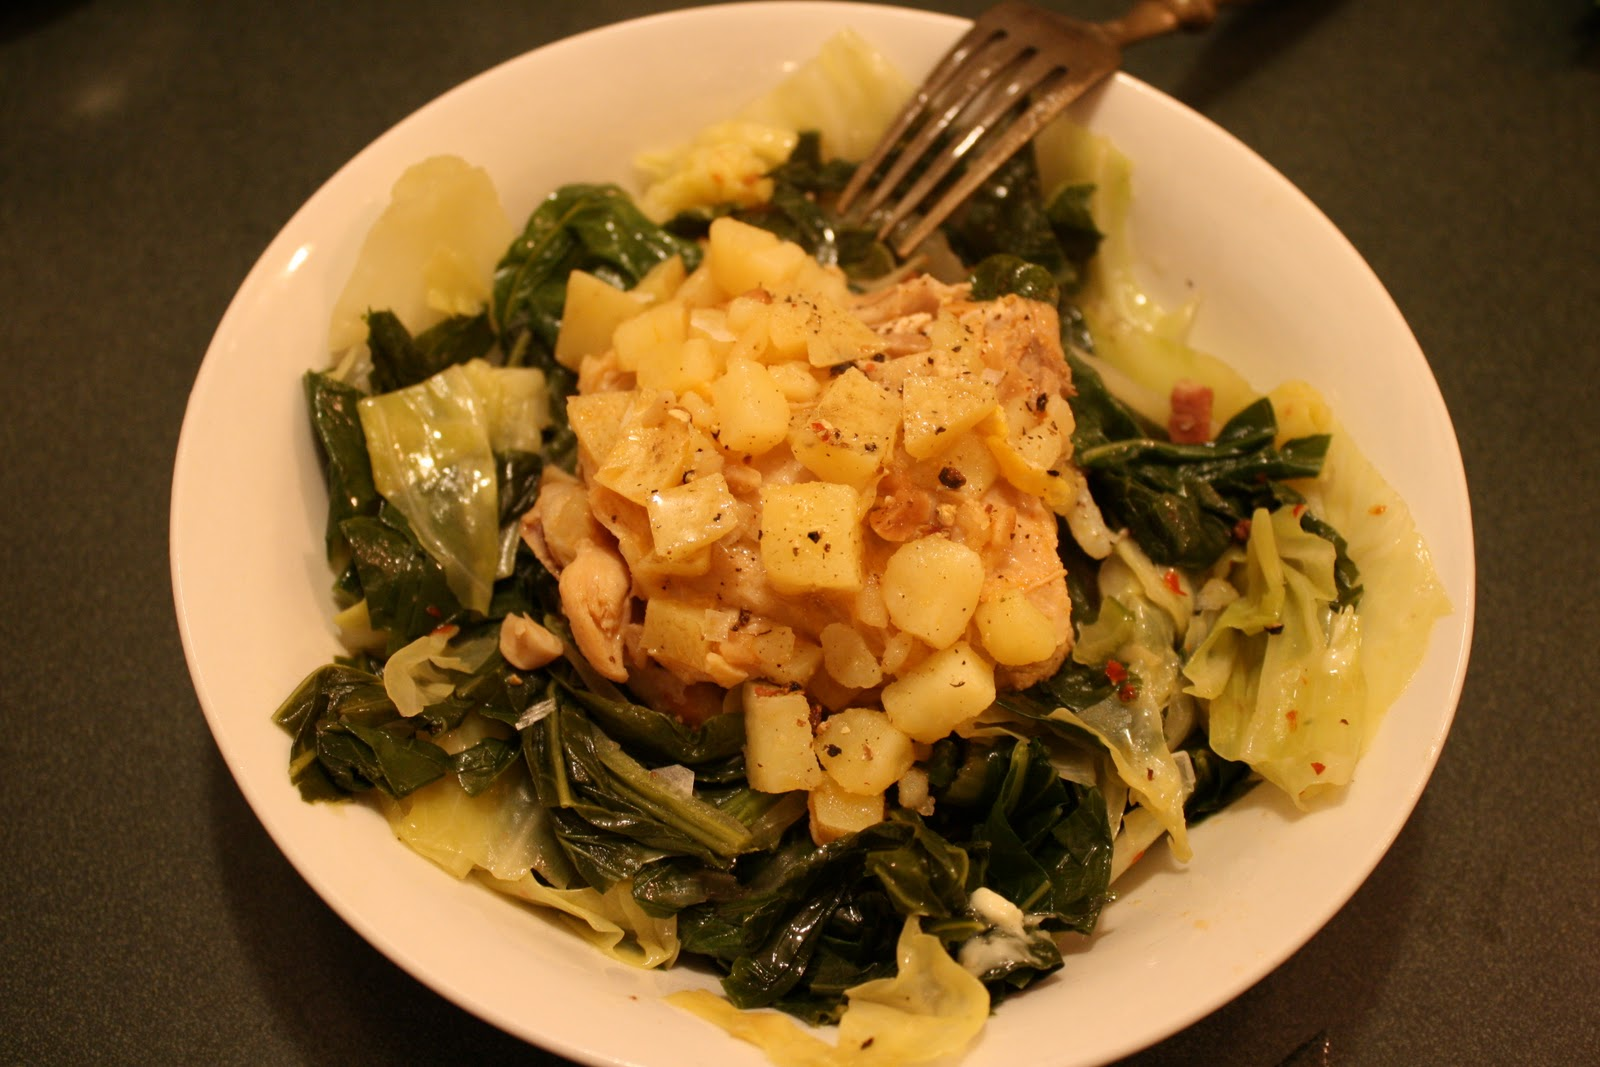 Whats cooking in your world day 95 liberia chicken peanut day 95 liberia chicken peanut stew with collard greens cabbage up next libya forumfinder Gallery